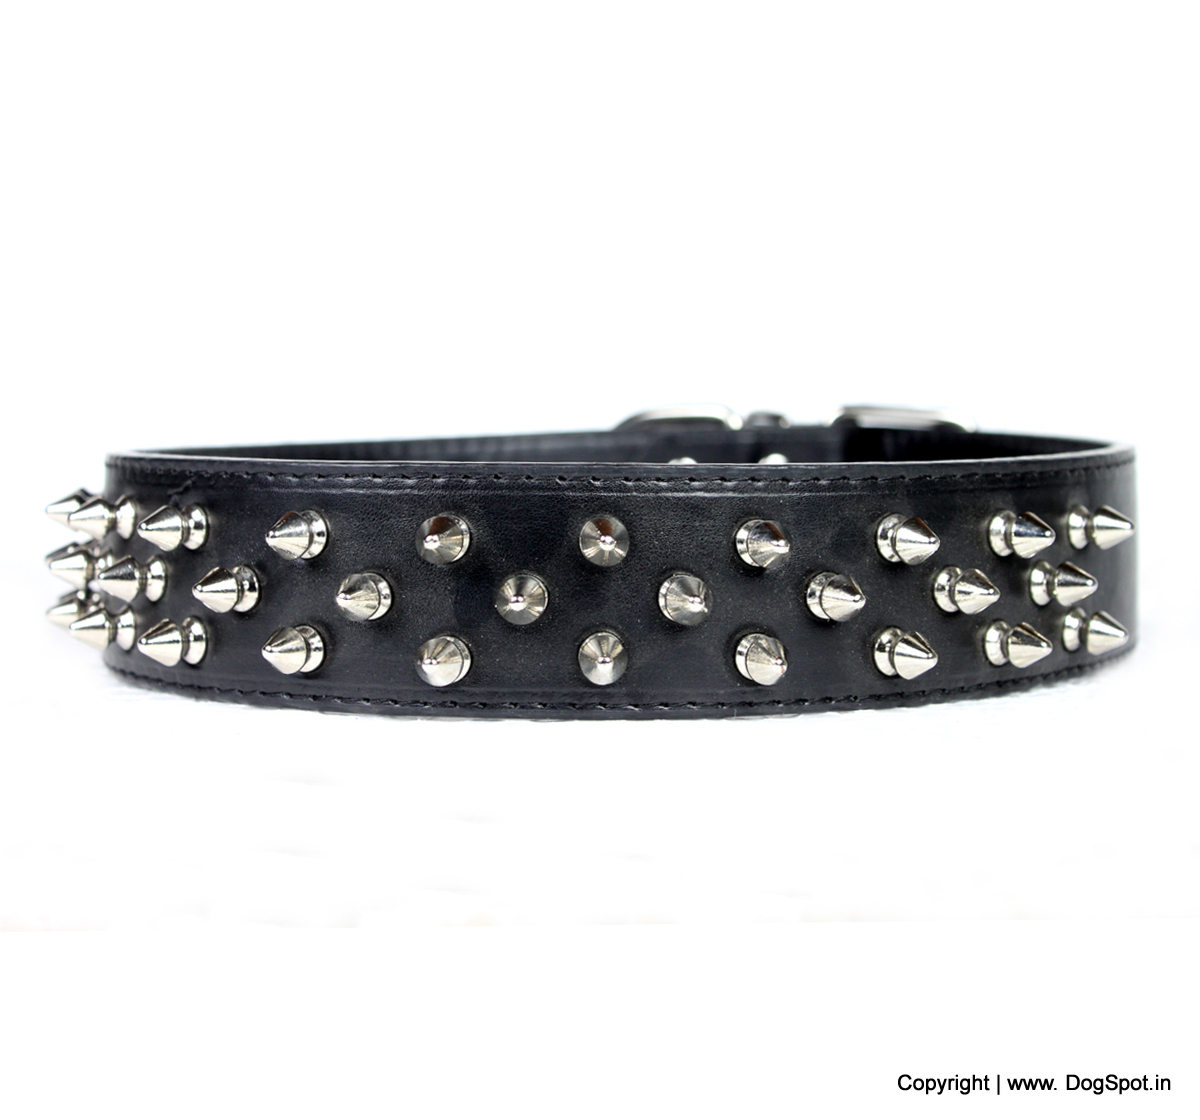 Dog Collar With Spikes- Large